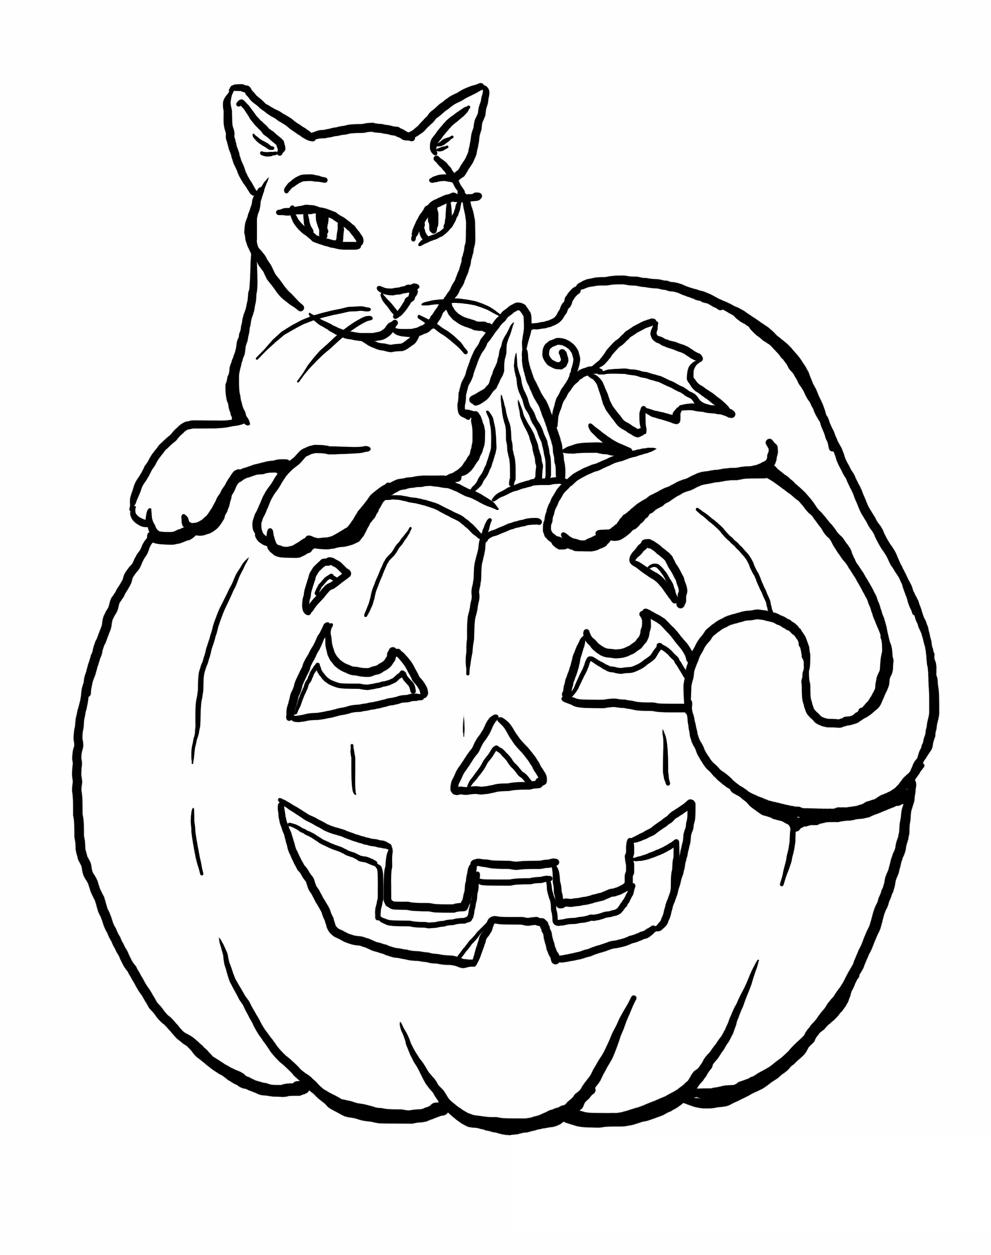 Coloring Page Of Pumpkin Pumpkin 73 Objects Printable Coloring Pages